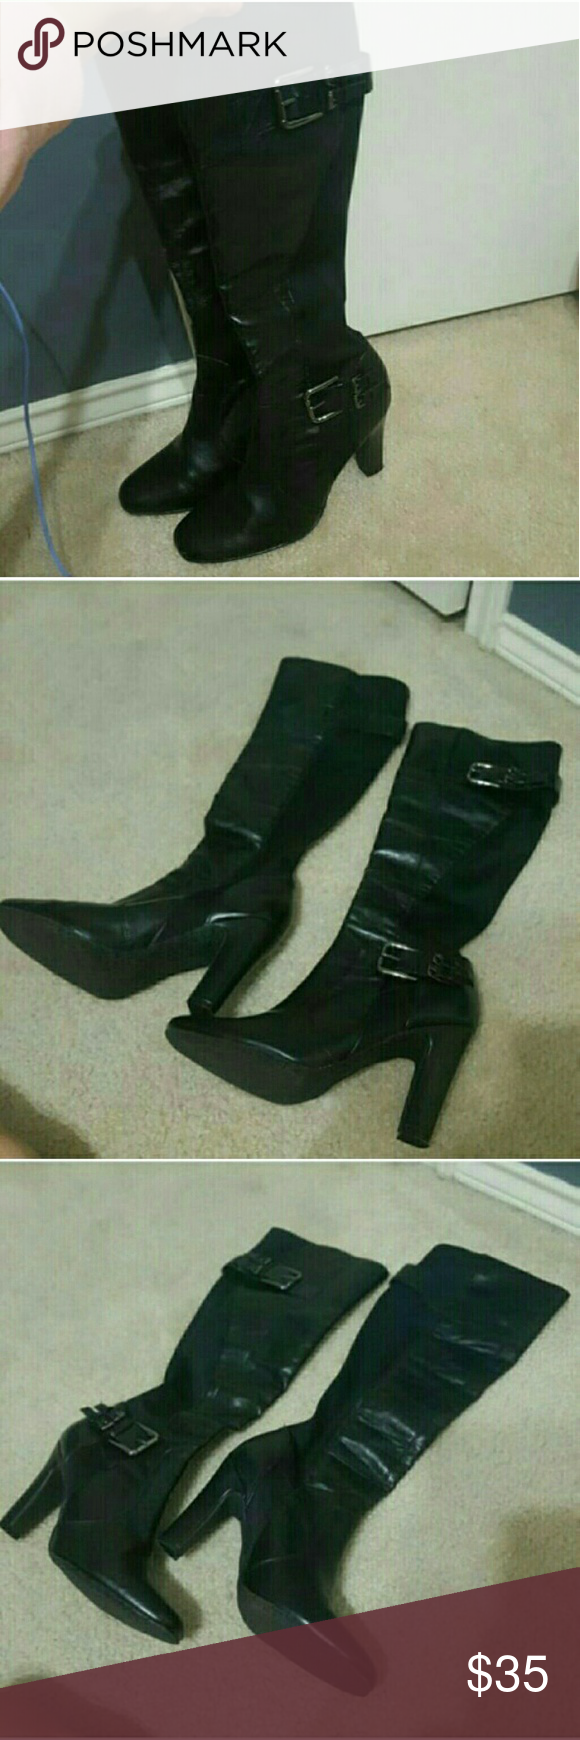 CARTUROCHIAN KNEE HIGH BOOTS NO TRADES AT THE MOMENT PLEASE NEW CONDITION NOT WORN KNEE HIGH BOOTS  VERY STRETCHY BUCKLES ON TOP AND BOTTOM HEELS IS ABOUT 2 INCHES Carturochian Shoes Heeled Boots